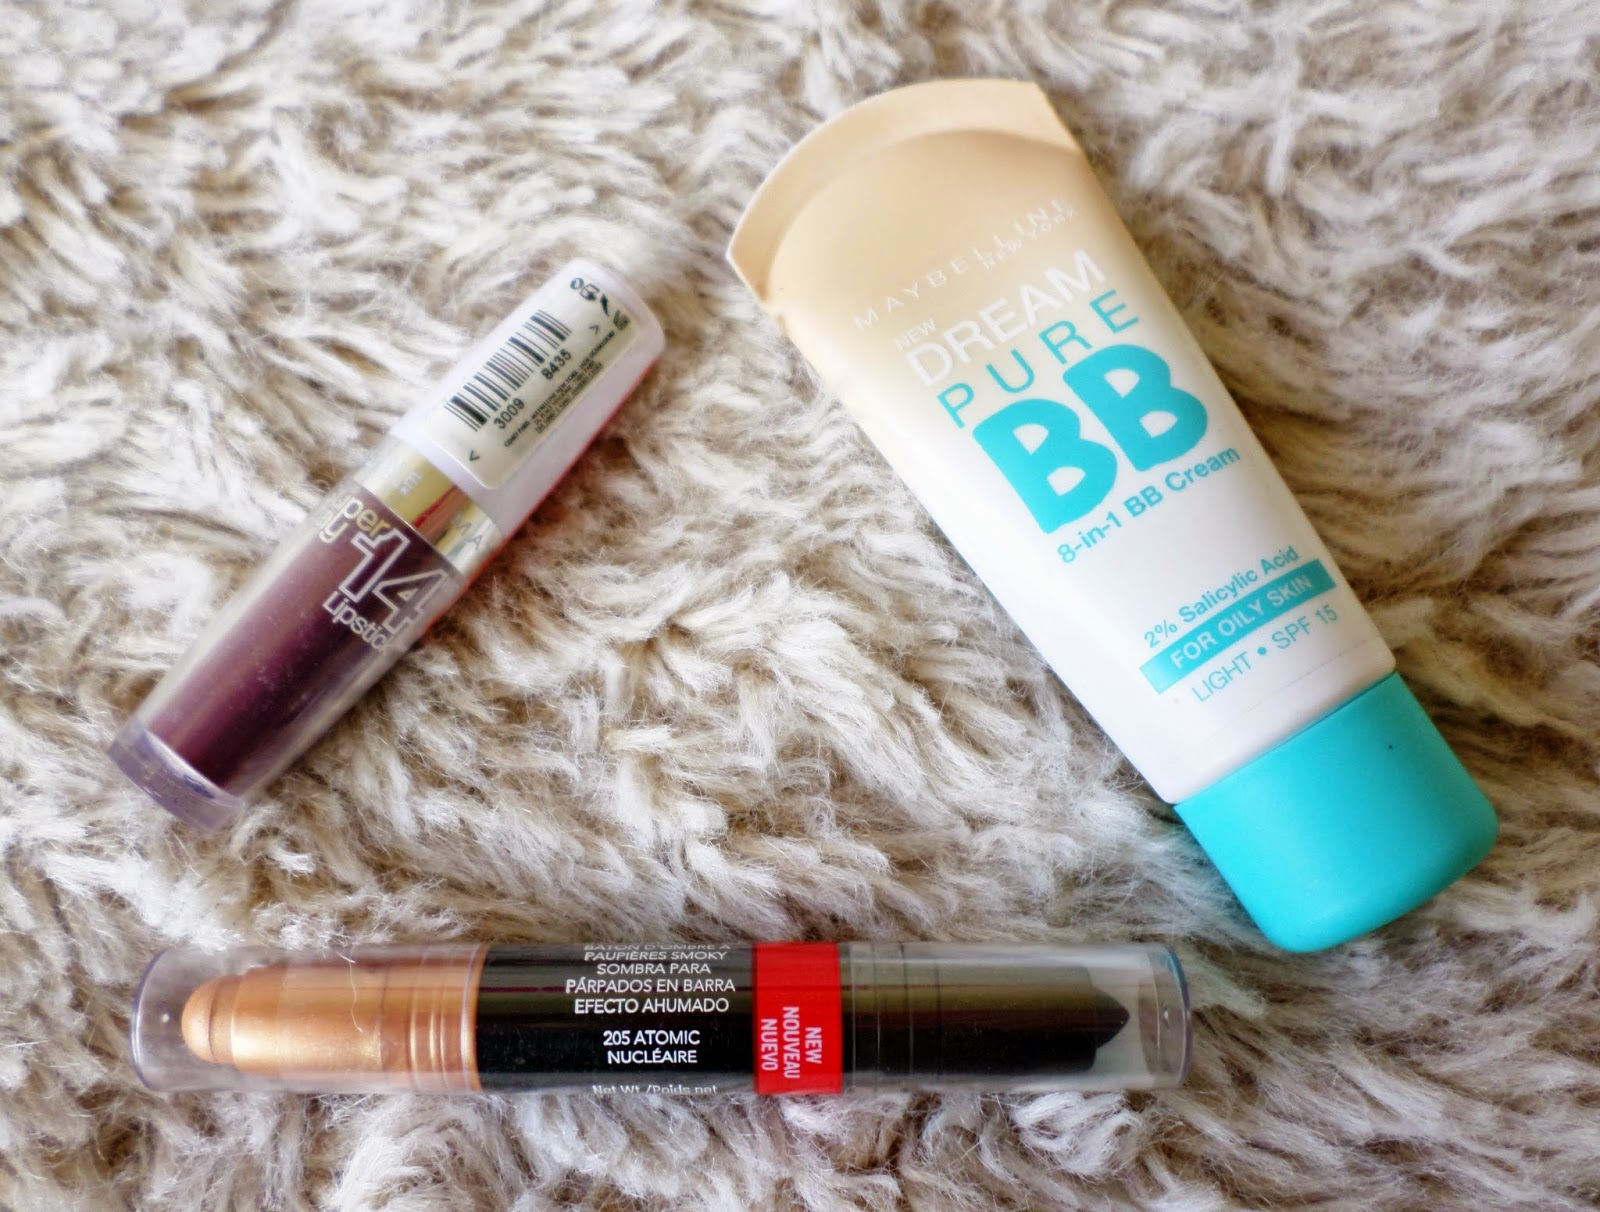 Maybelline Dream Pure BB 8-in-1 BB Cream in Light, Super Stay 14hr Lipstick in Always Plum 260 & Revlon Colorstay Smoky Shadow Stick in 205 Atomic